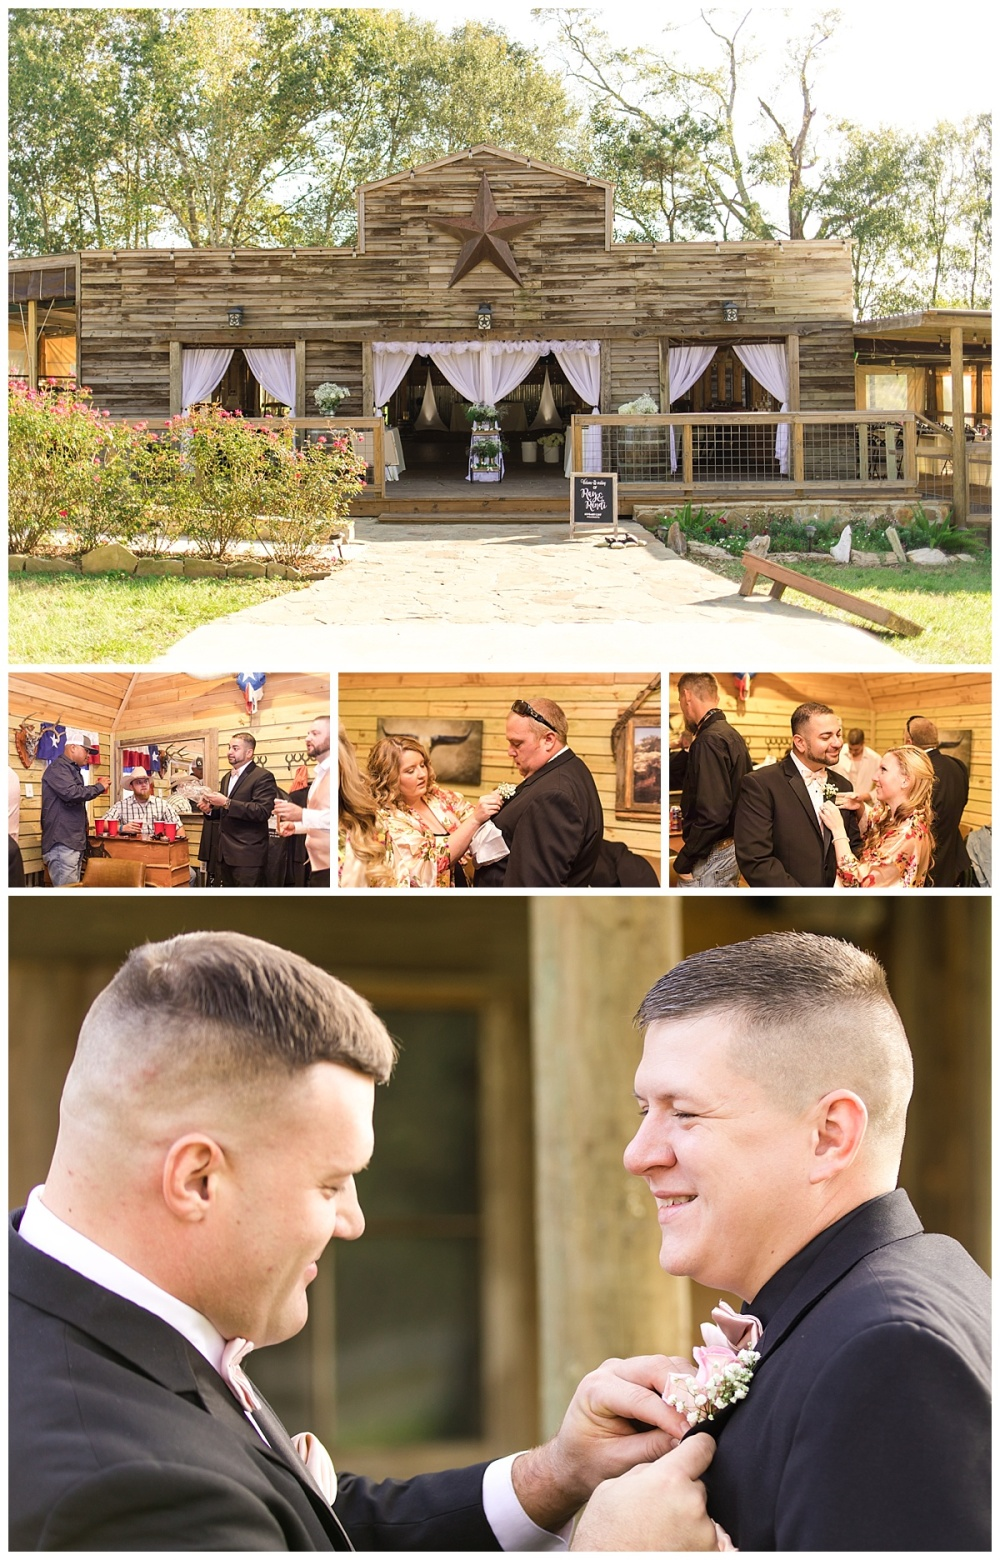 Carly-Barton-Photography-South-Texas-Wedding-Photographer-SJP-Ranch-Hardin_0073